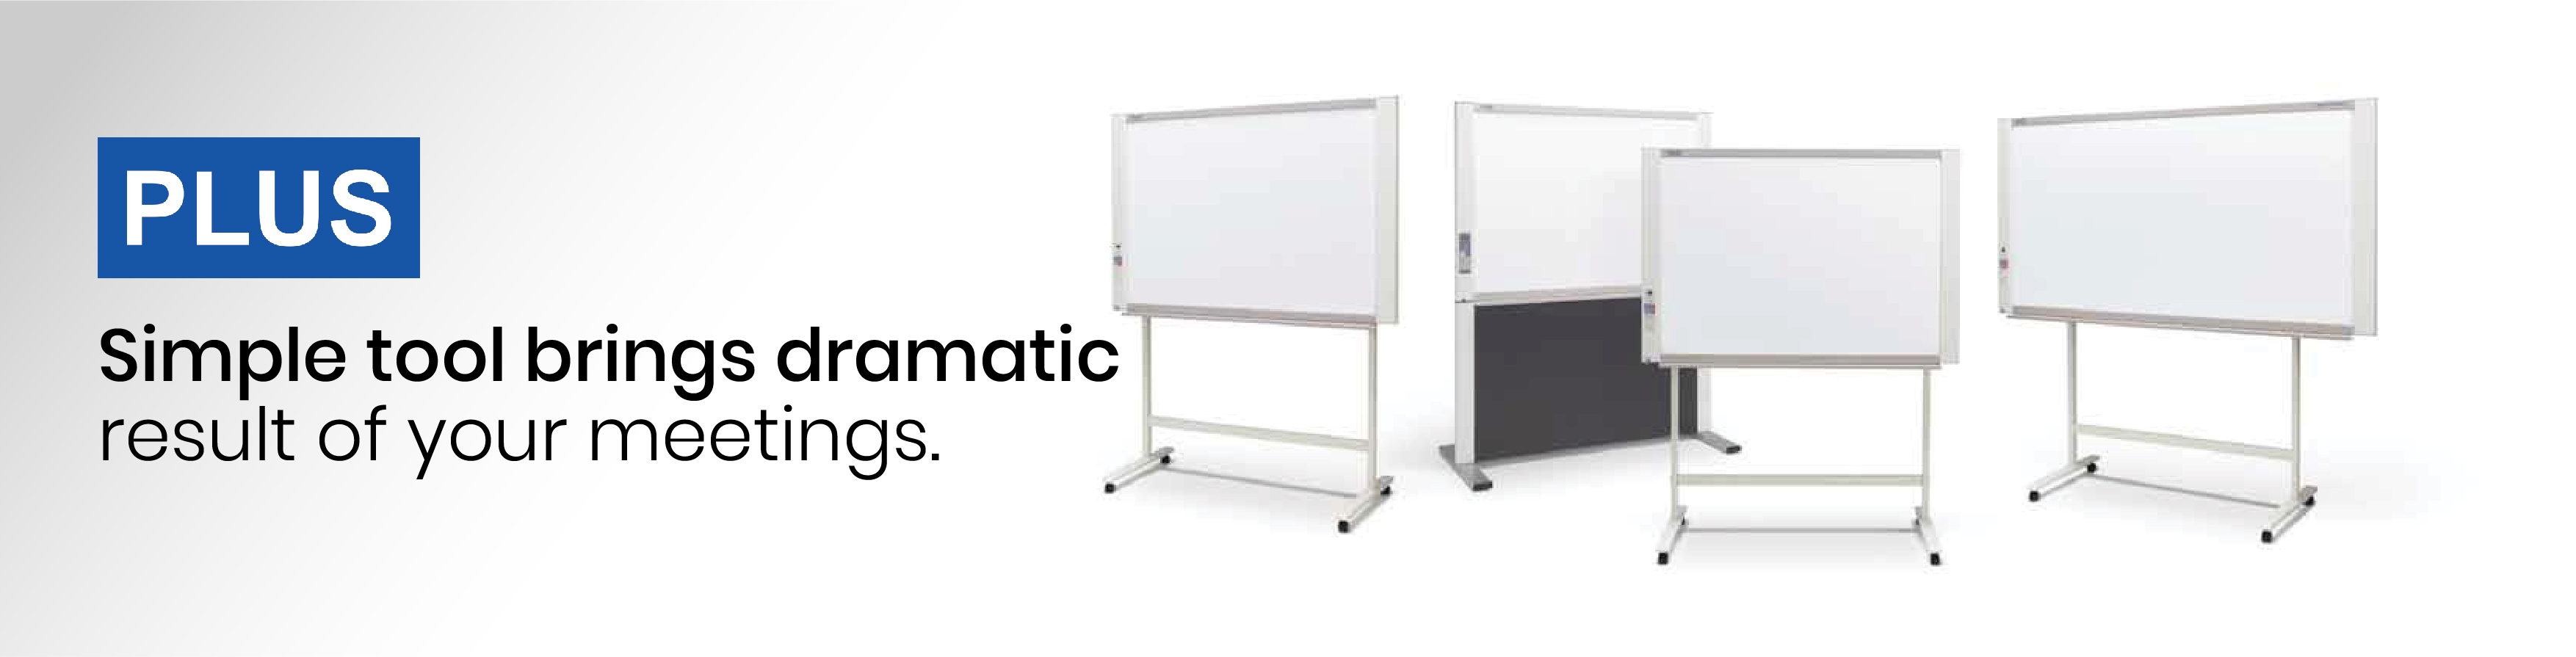 Harga Interactive Display